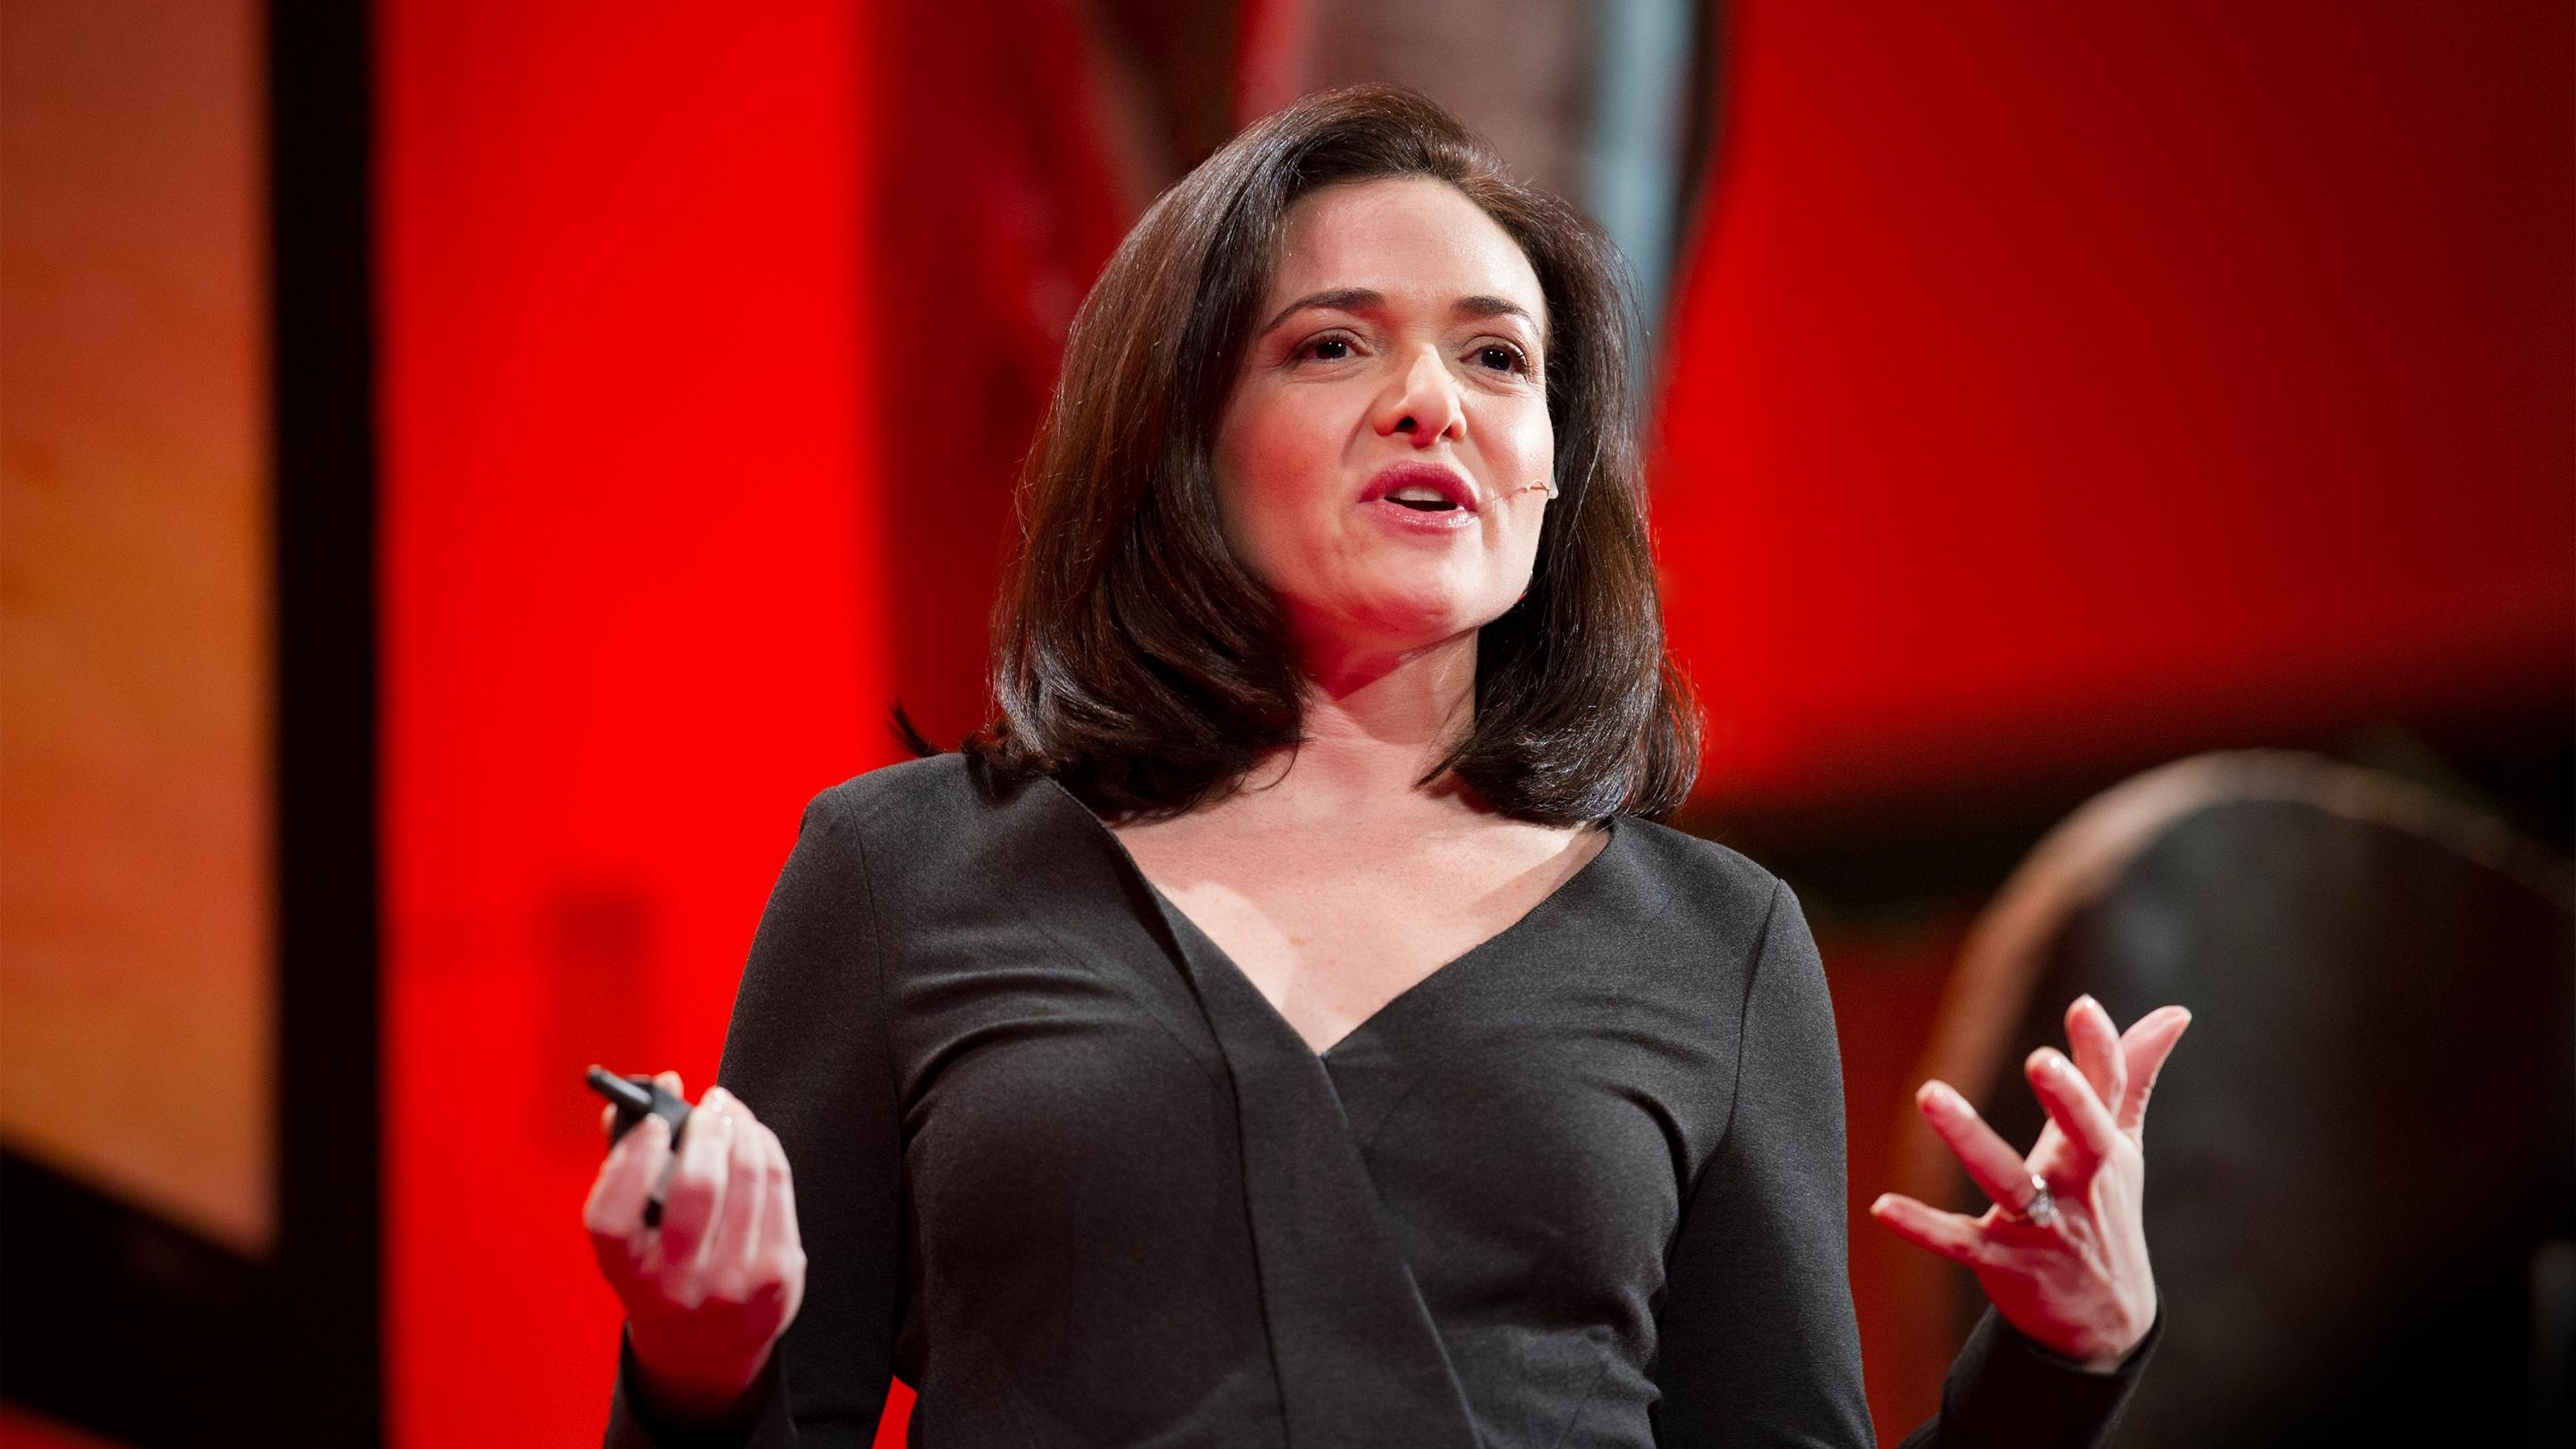 Image result for why we have too few women leaders ted talk